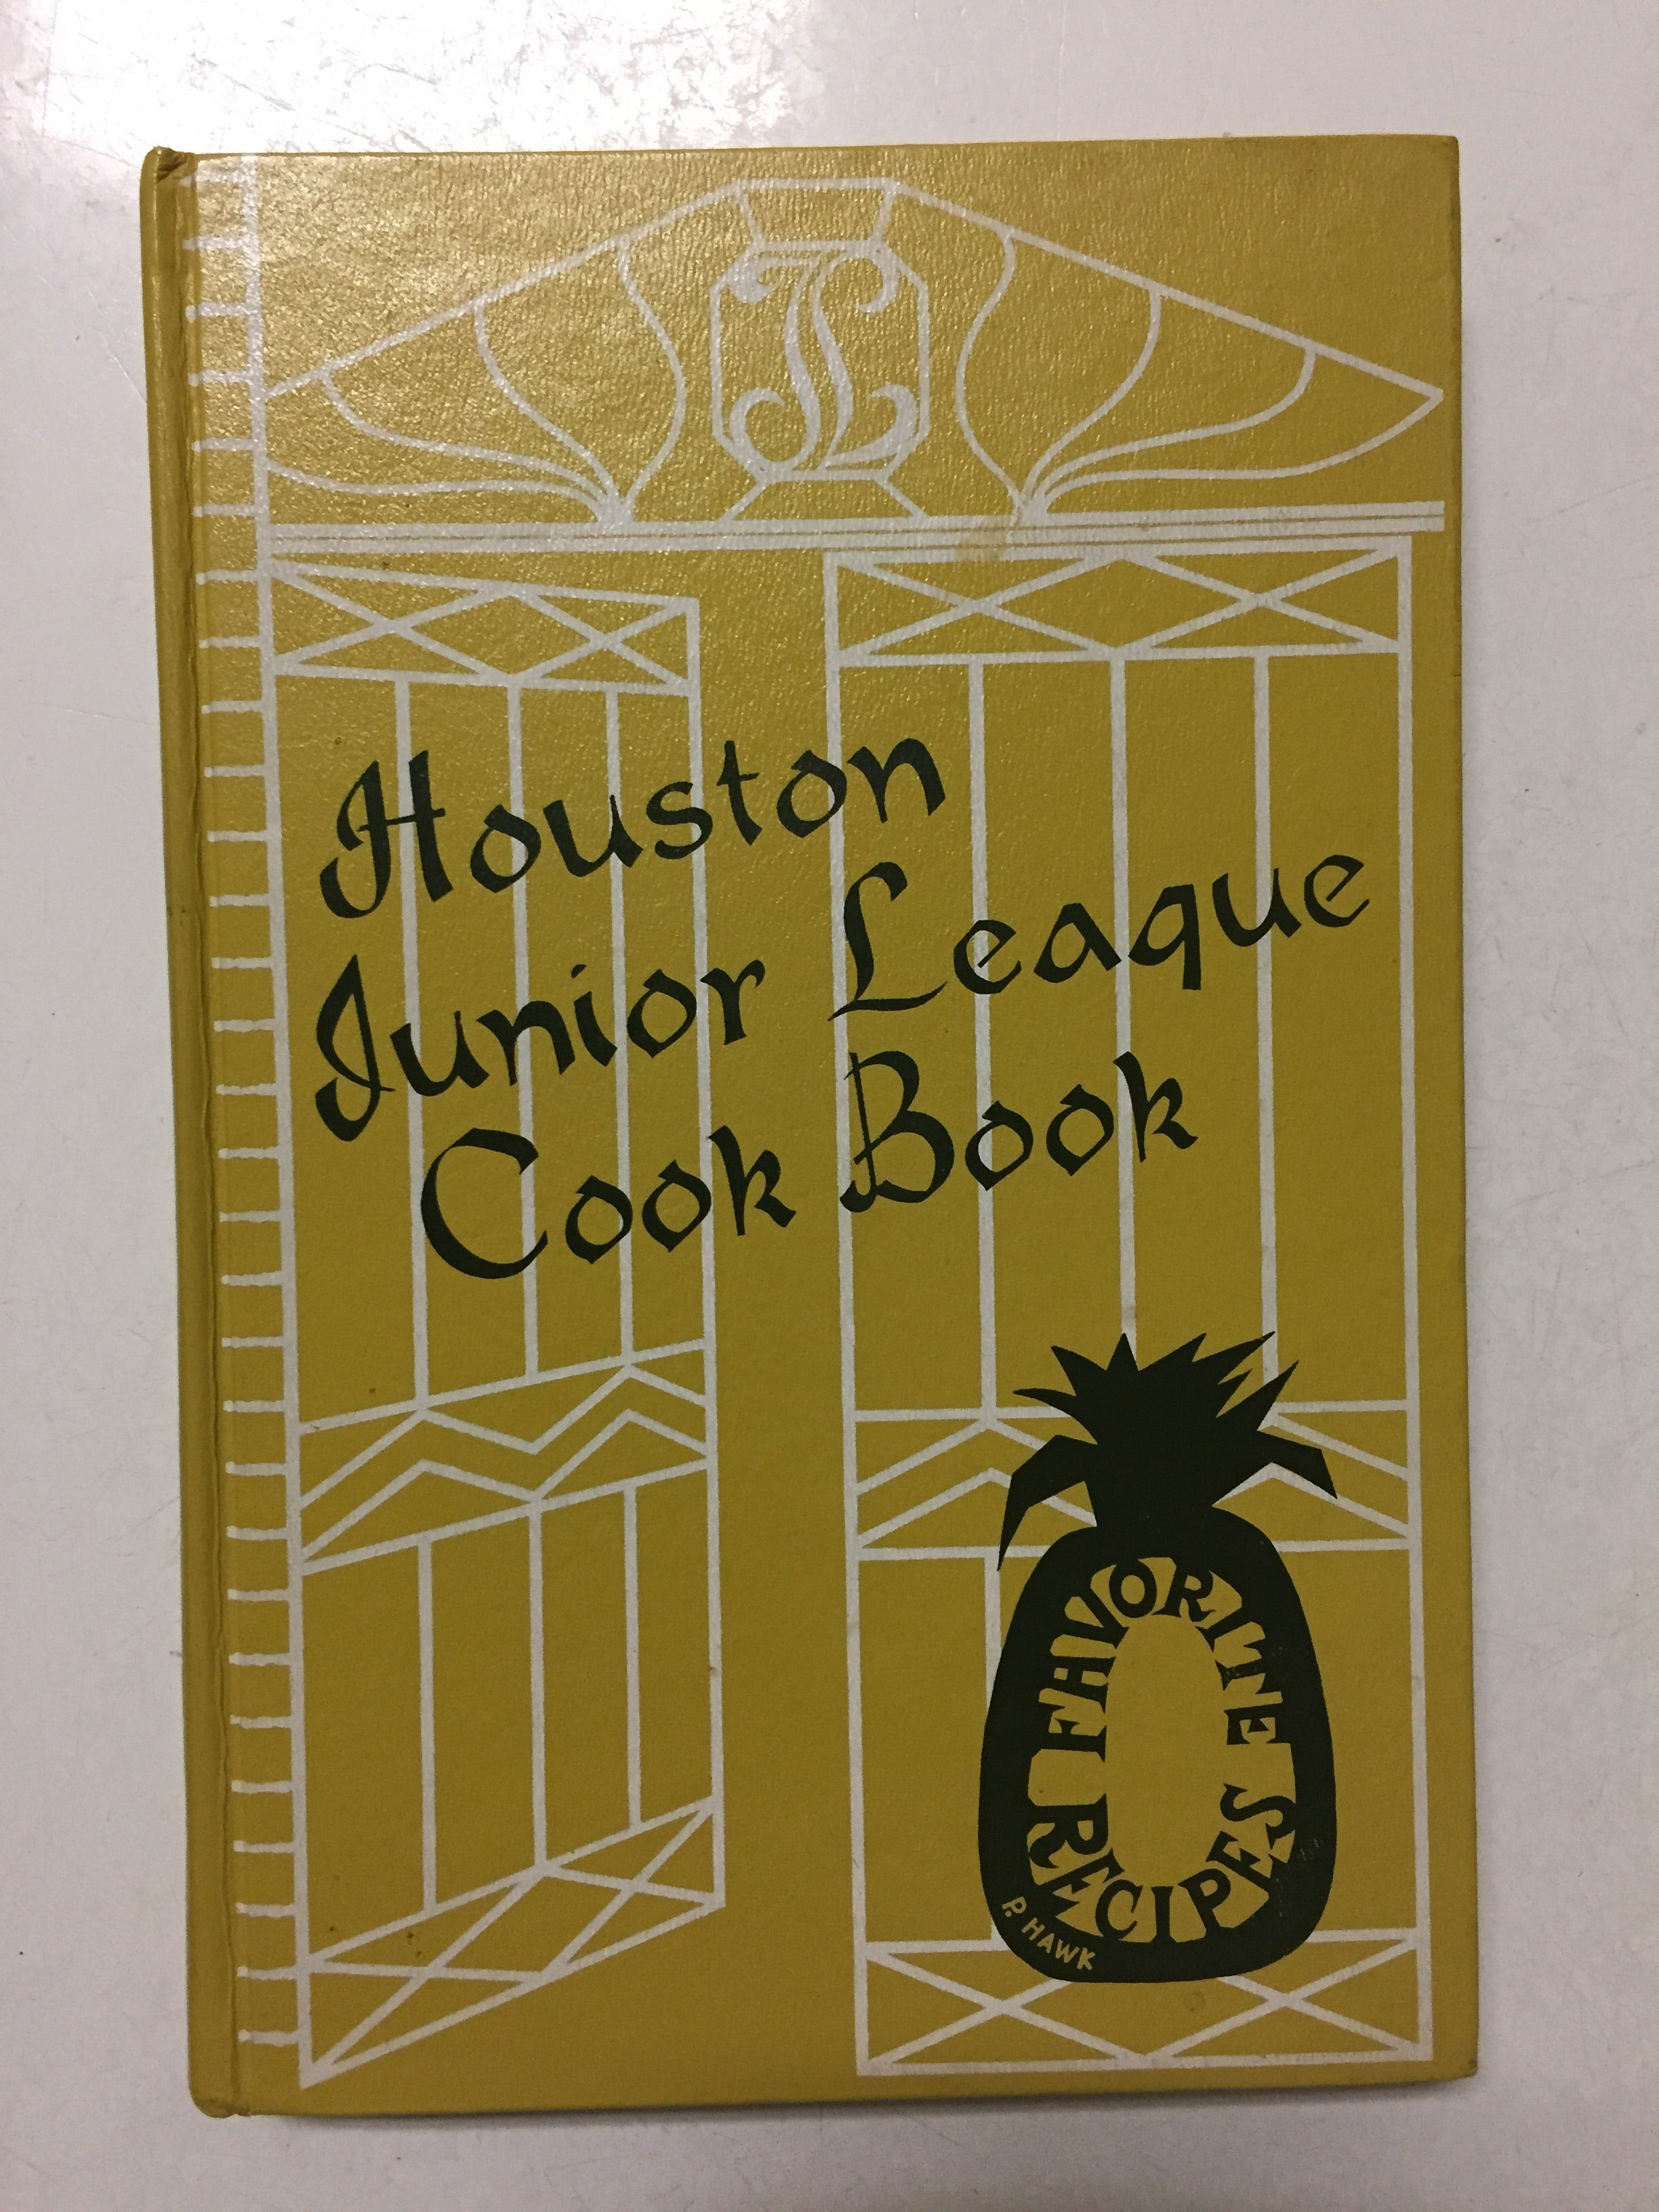 Houston Junior League Cookbook Favorite Recipes - Slickcatbooks